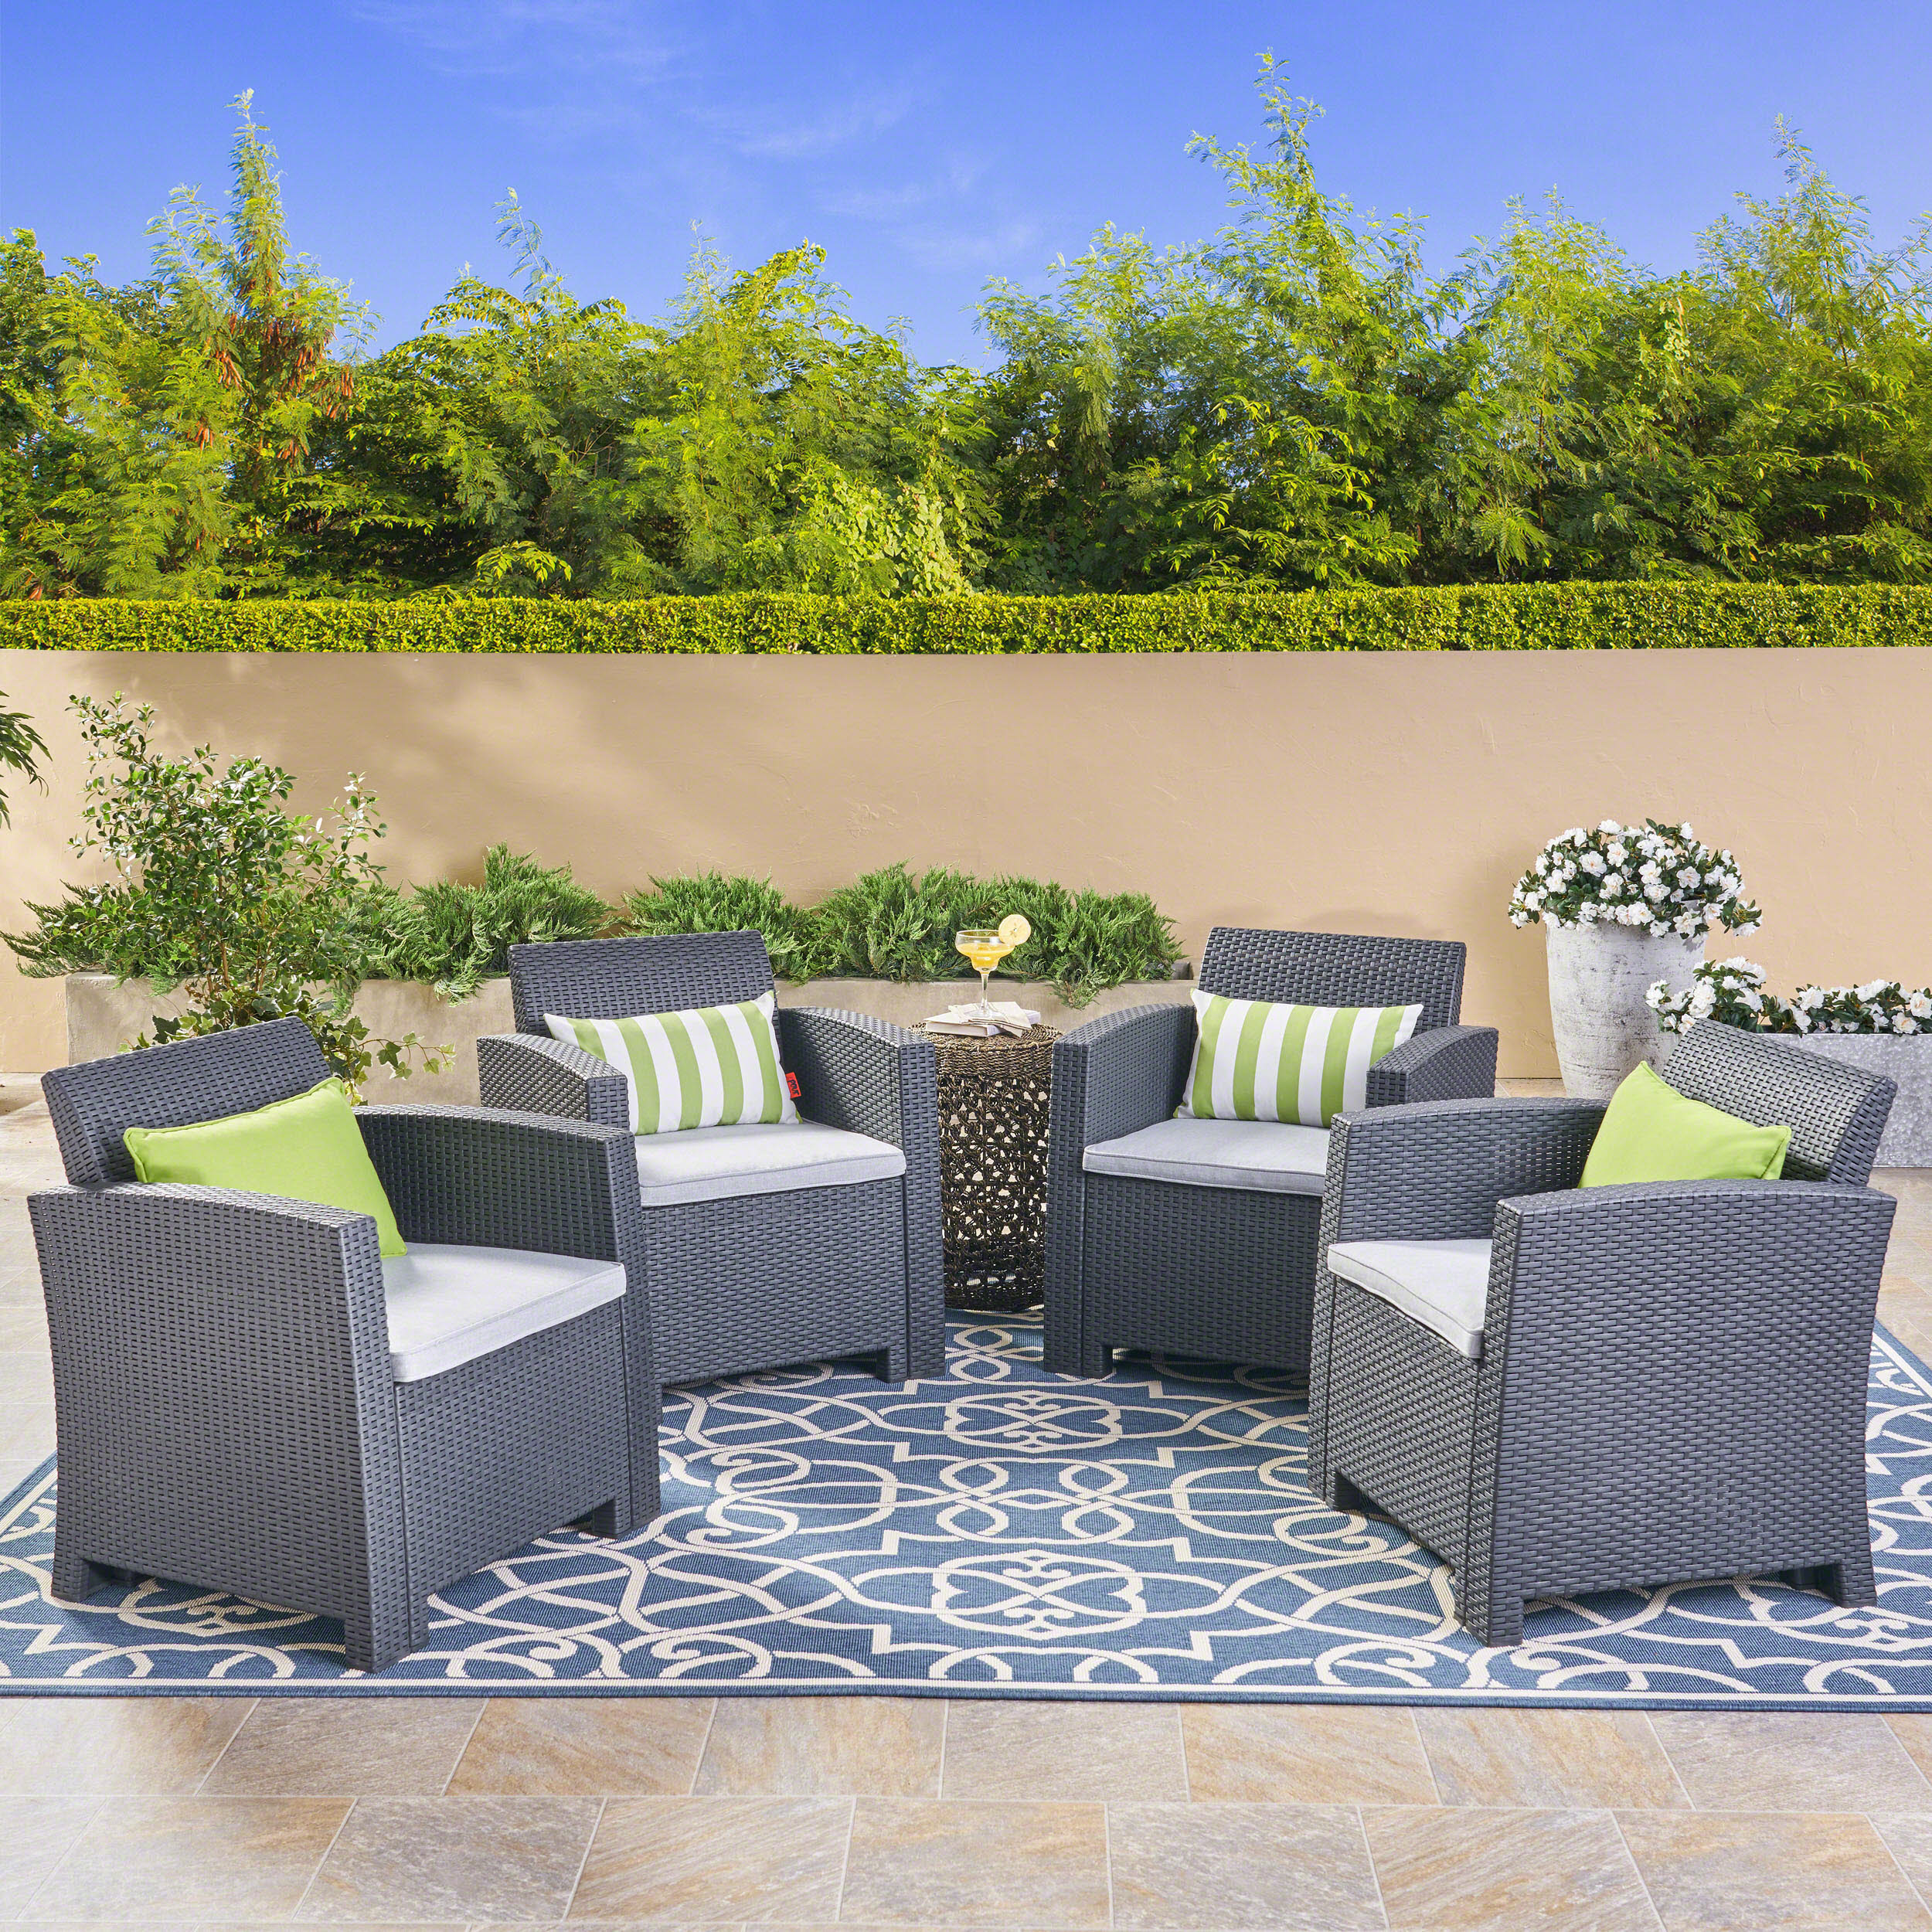 Noble House Sorianno Outdoor Charcoal Wicker Print Club Chairs With Cushions Grey Walmart Com Walmart Com